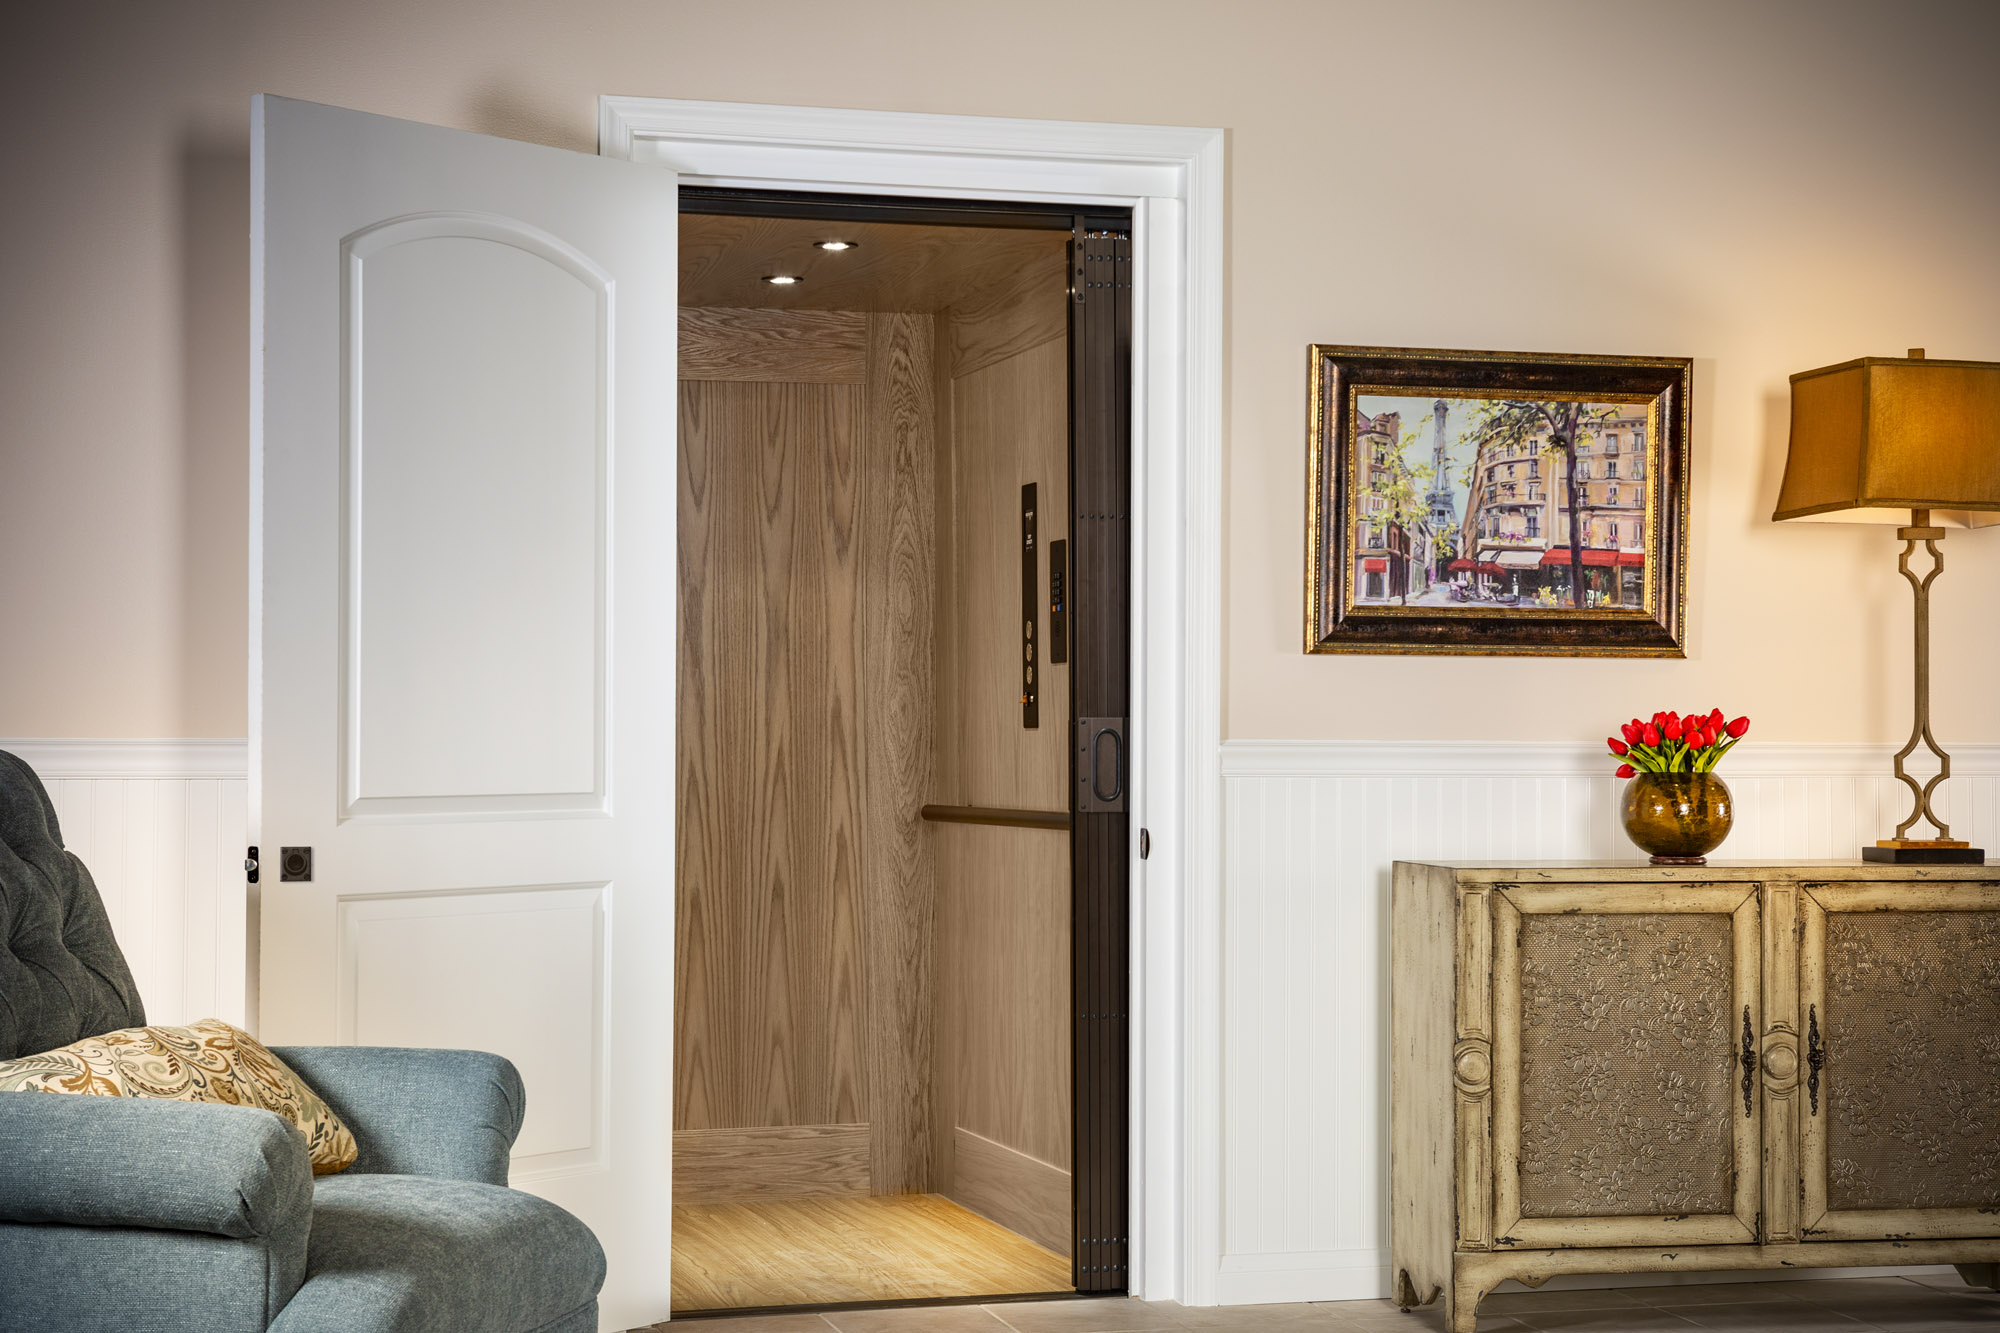 Home Elevator vs Stair Lifts - Pros and Cons | Inclinator